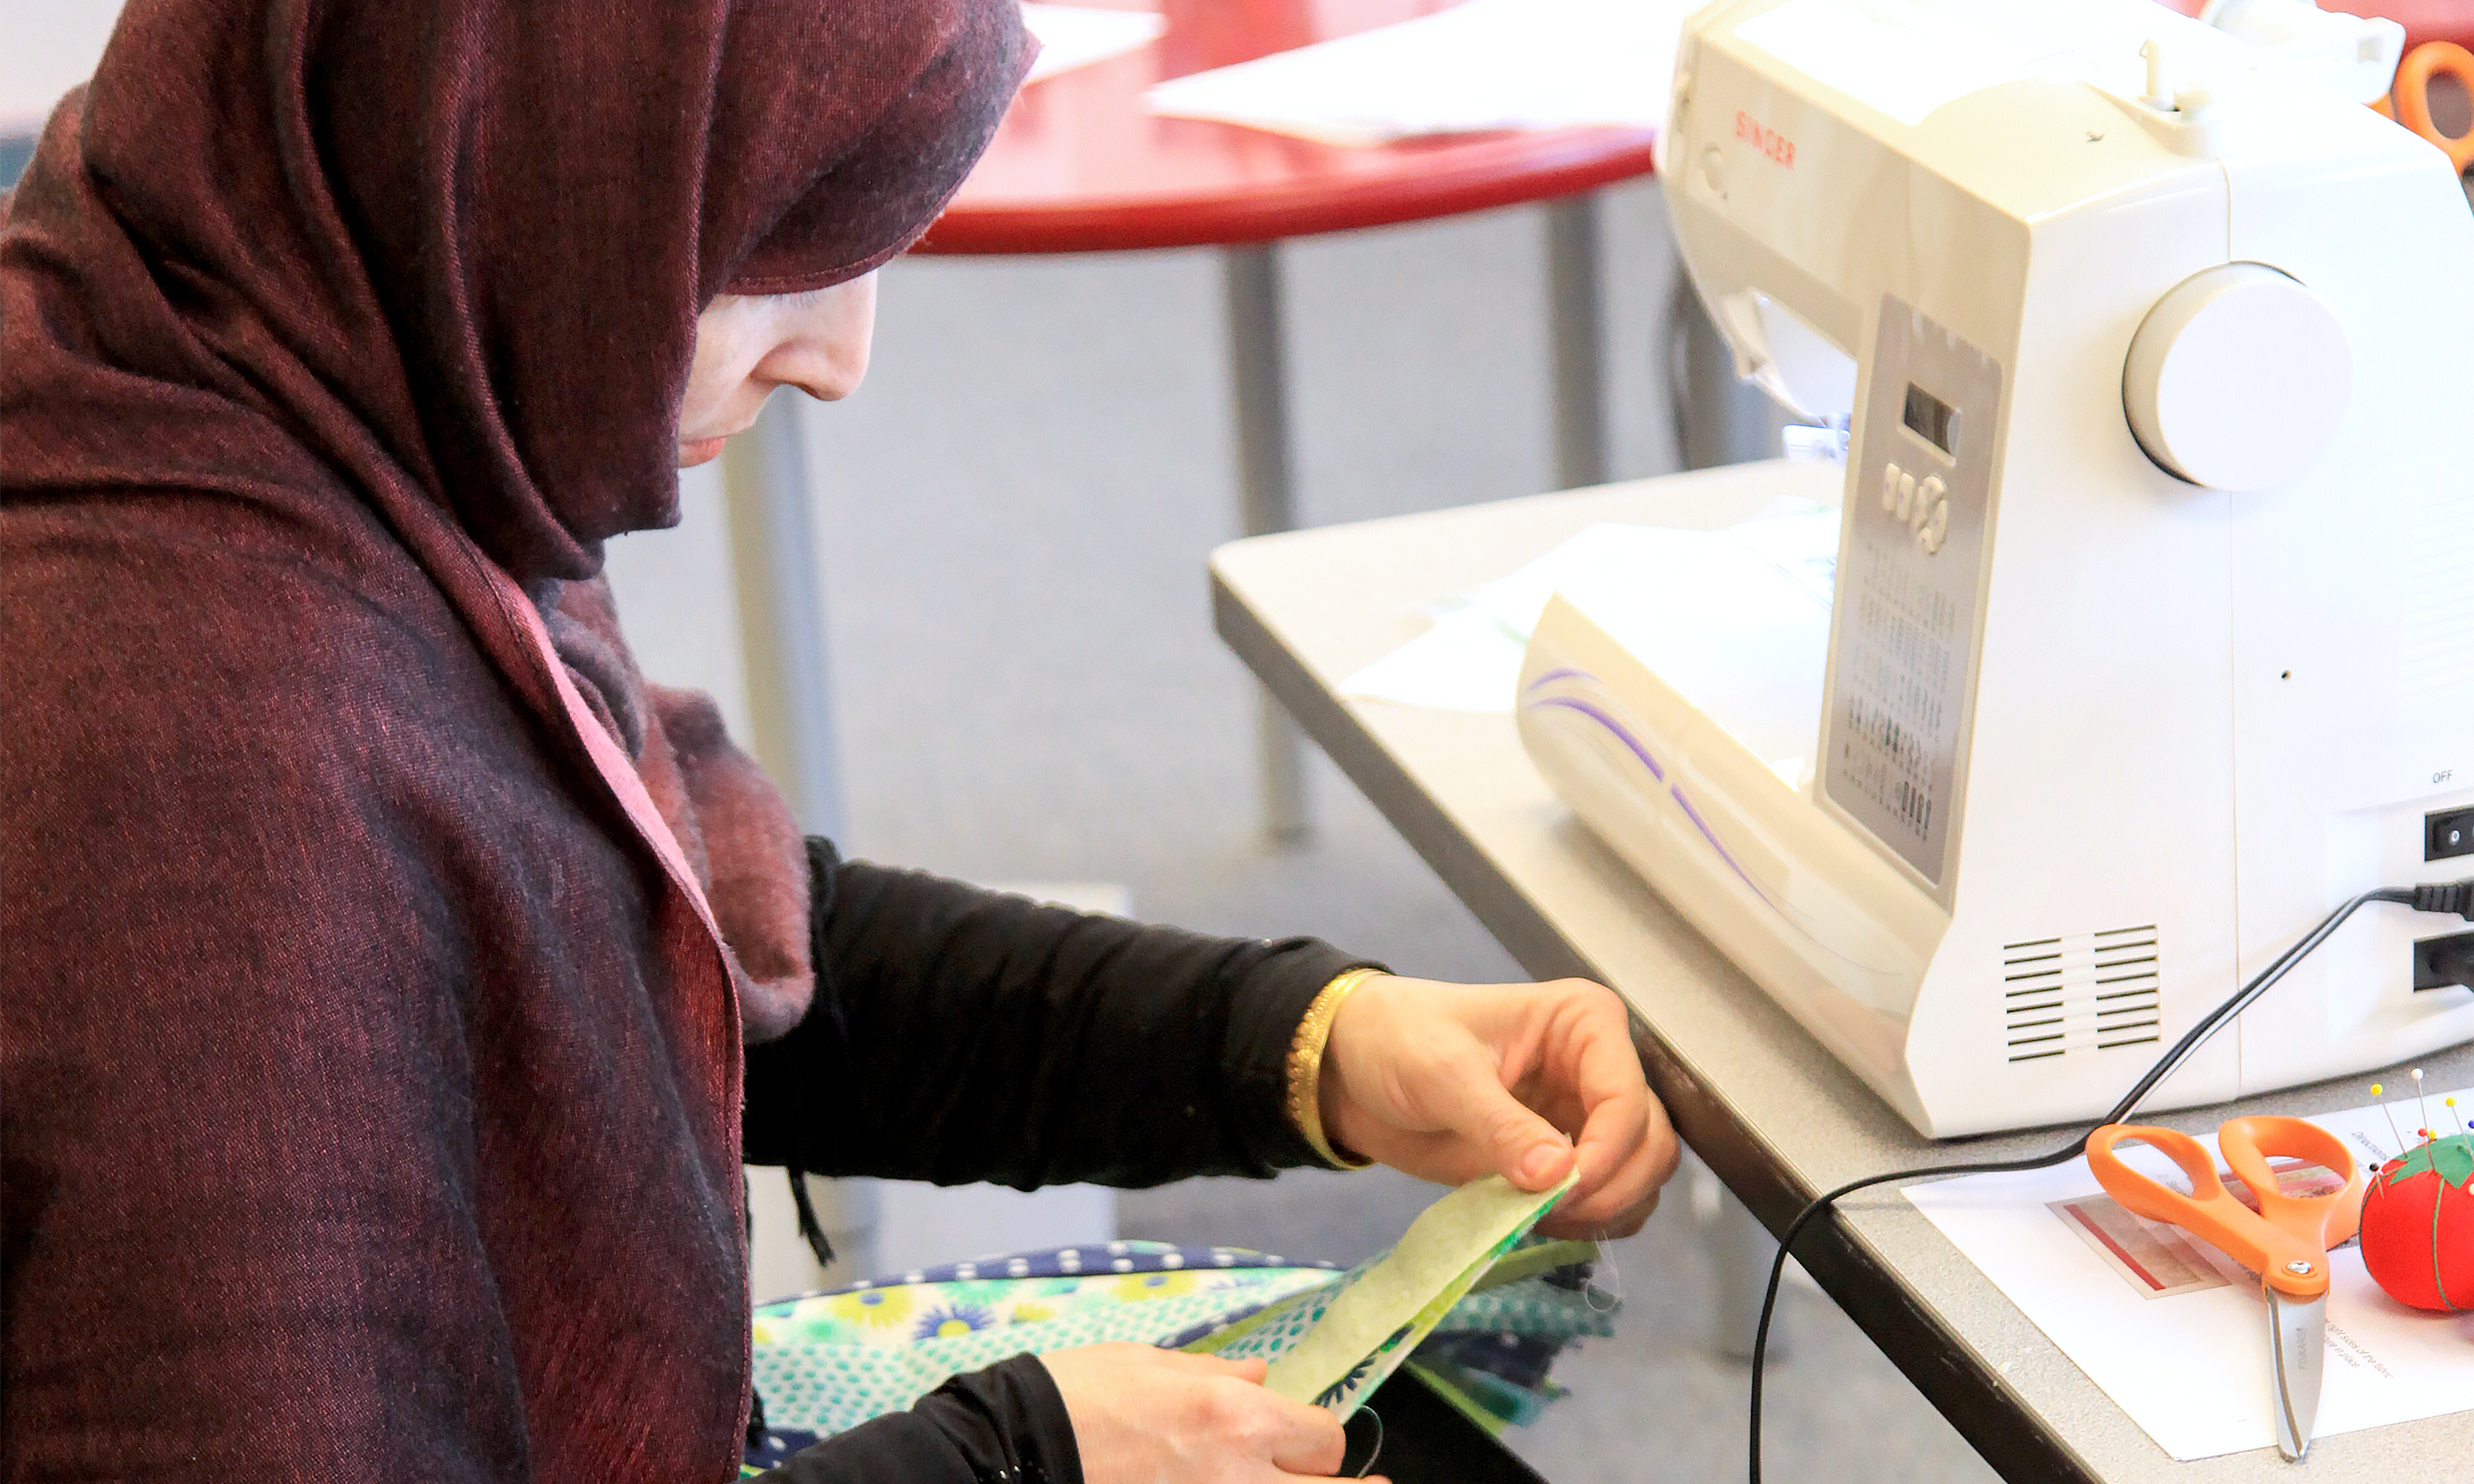 This is Fatima, a 30-year-old Afghan woman and a mother of four. On the first day of World Relief Seattle's inaugural Women's Sewing Class, Fatima clutched her pencil and laboriously copied her name on a pre-test. She had gotten her children ready for school, walked nearly a mile to the bus stop and arrived at her first official class—EVER.